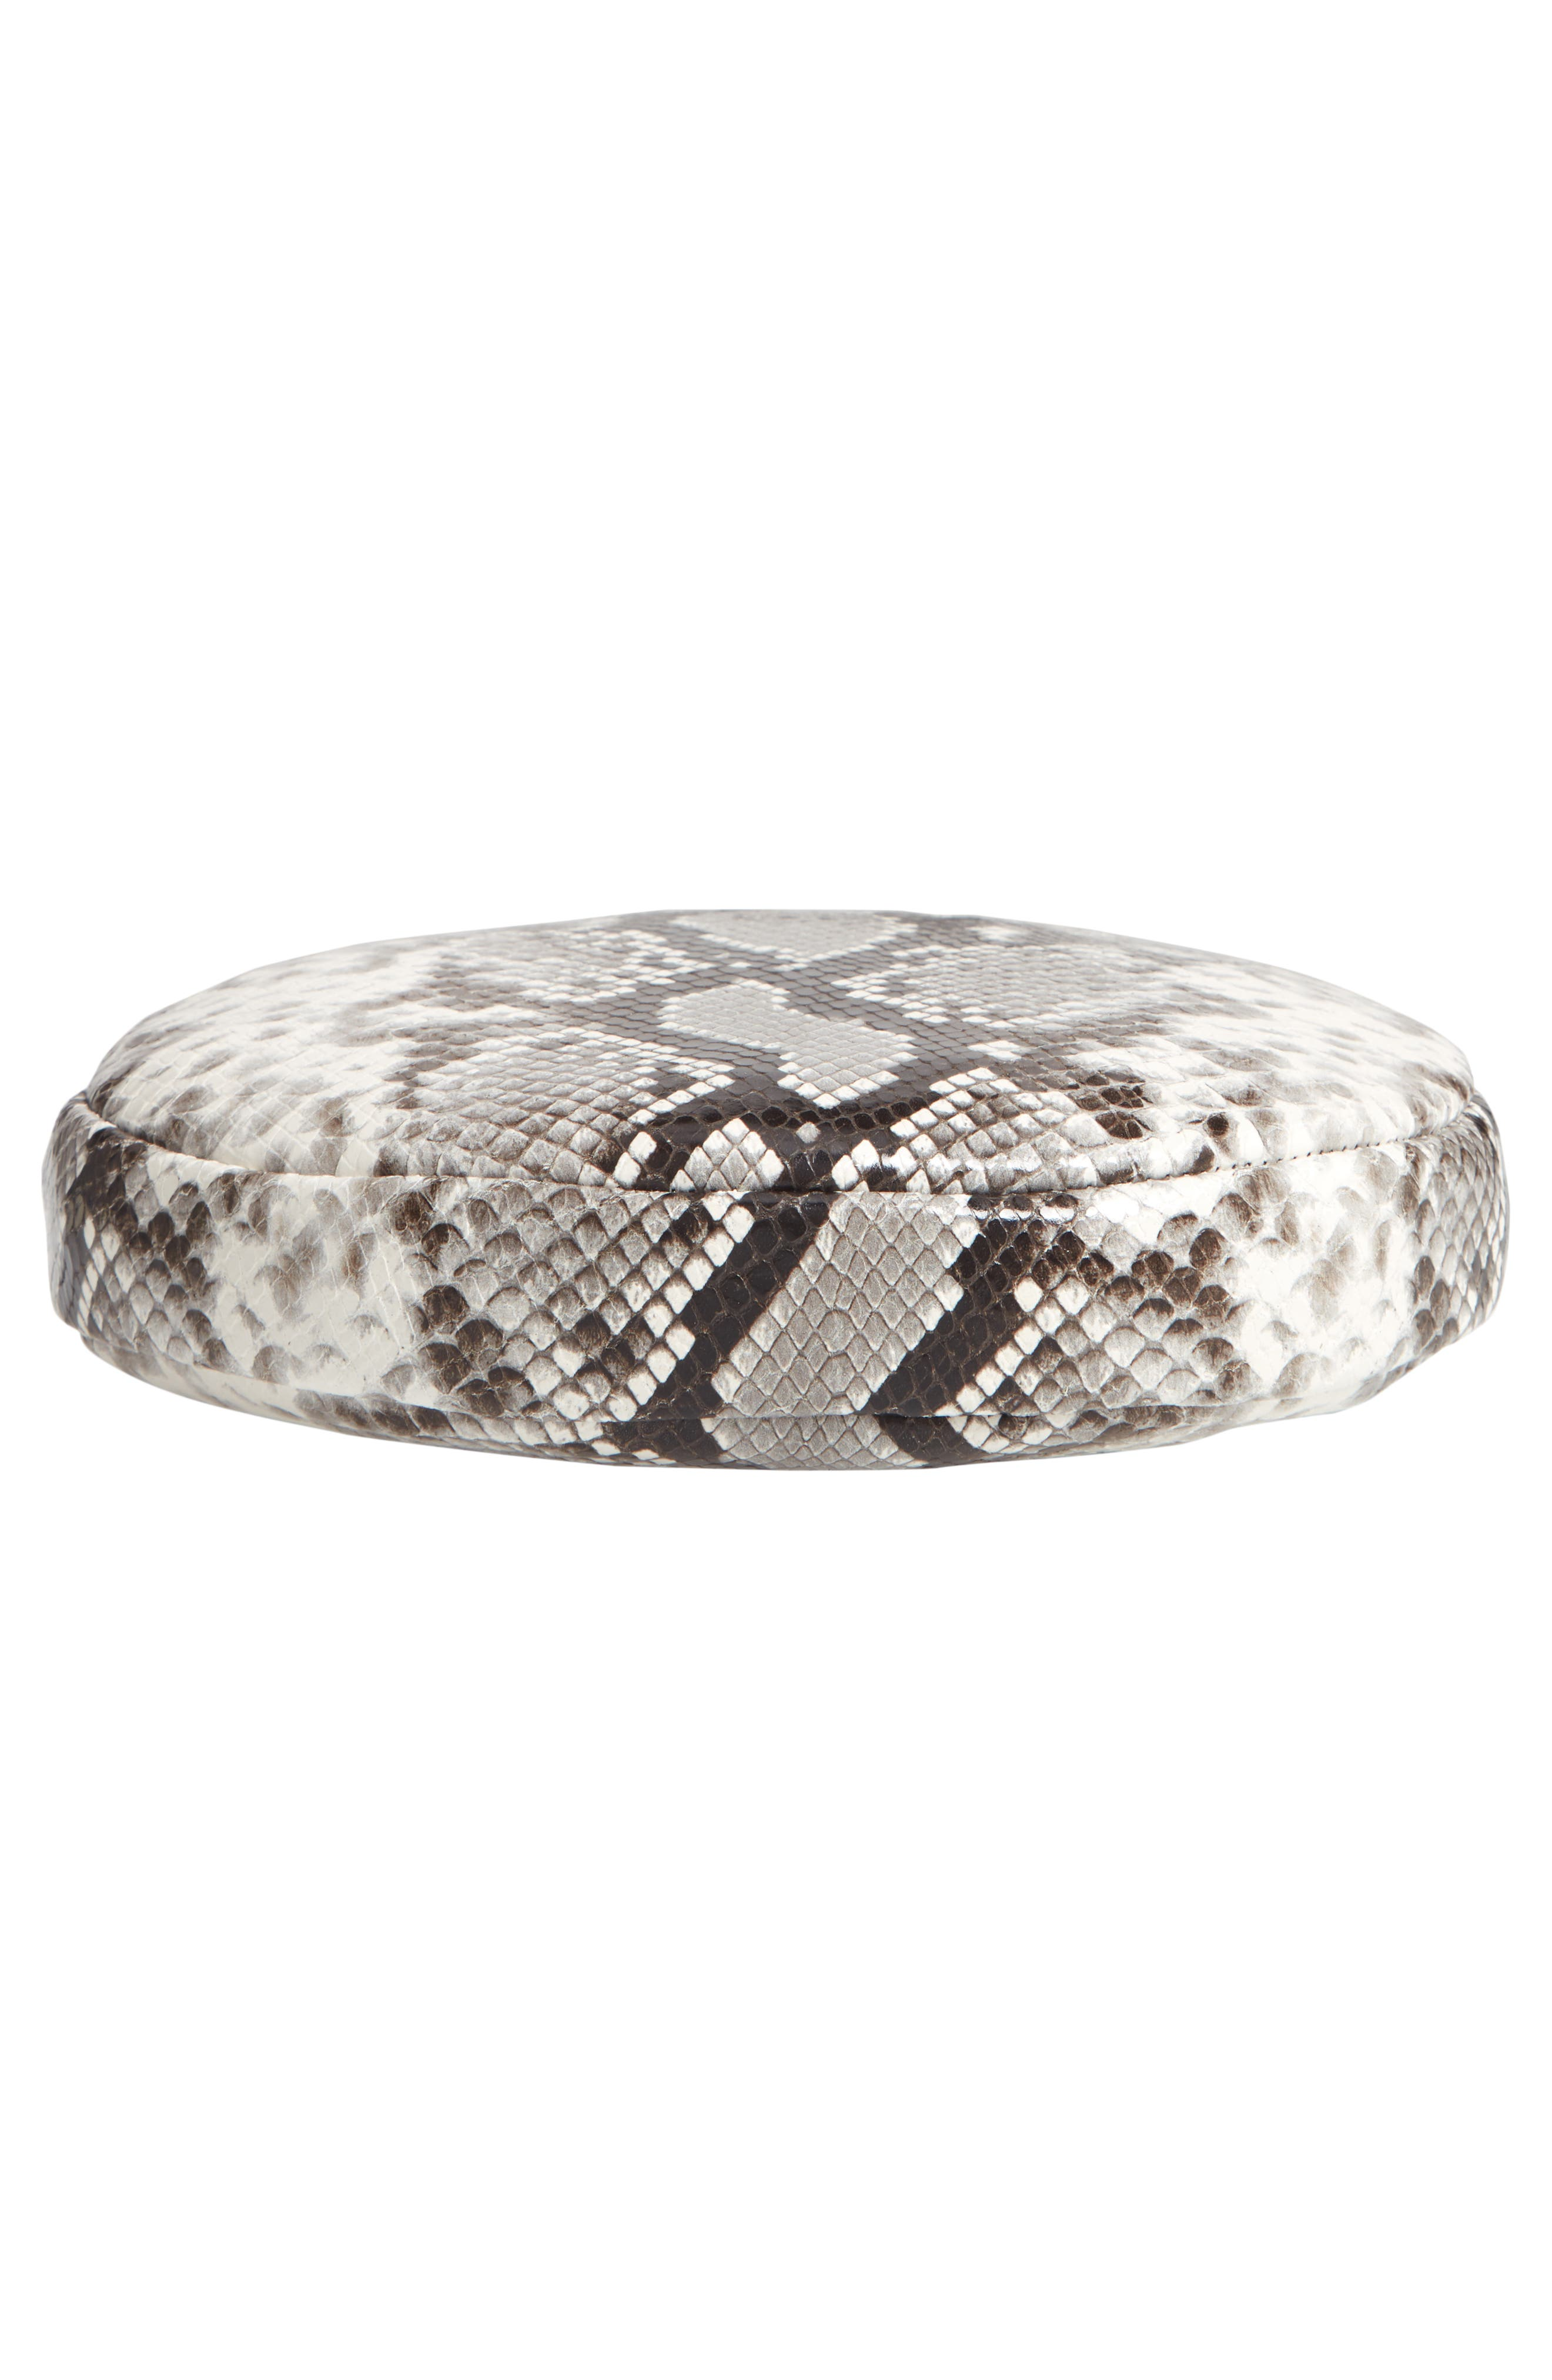 Python Embossed Leather Circle Clutch,                             Alternate thumbnail 6, color,                             001